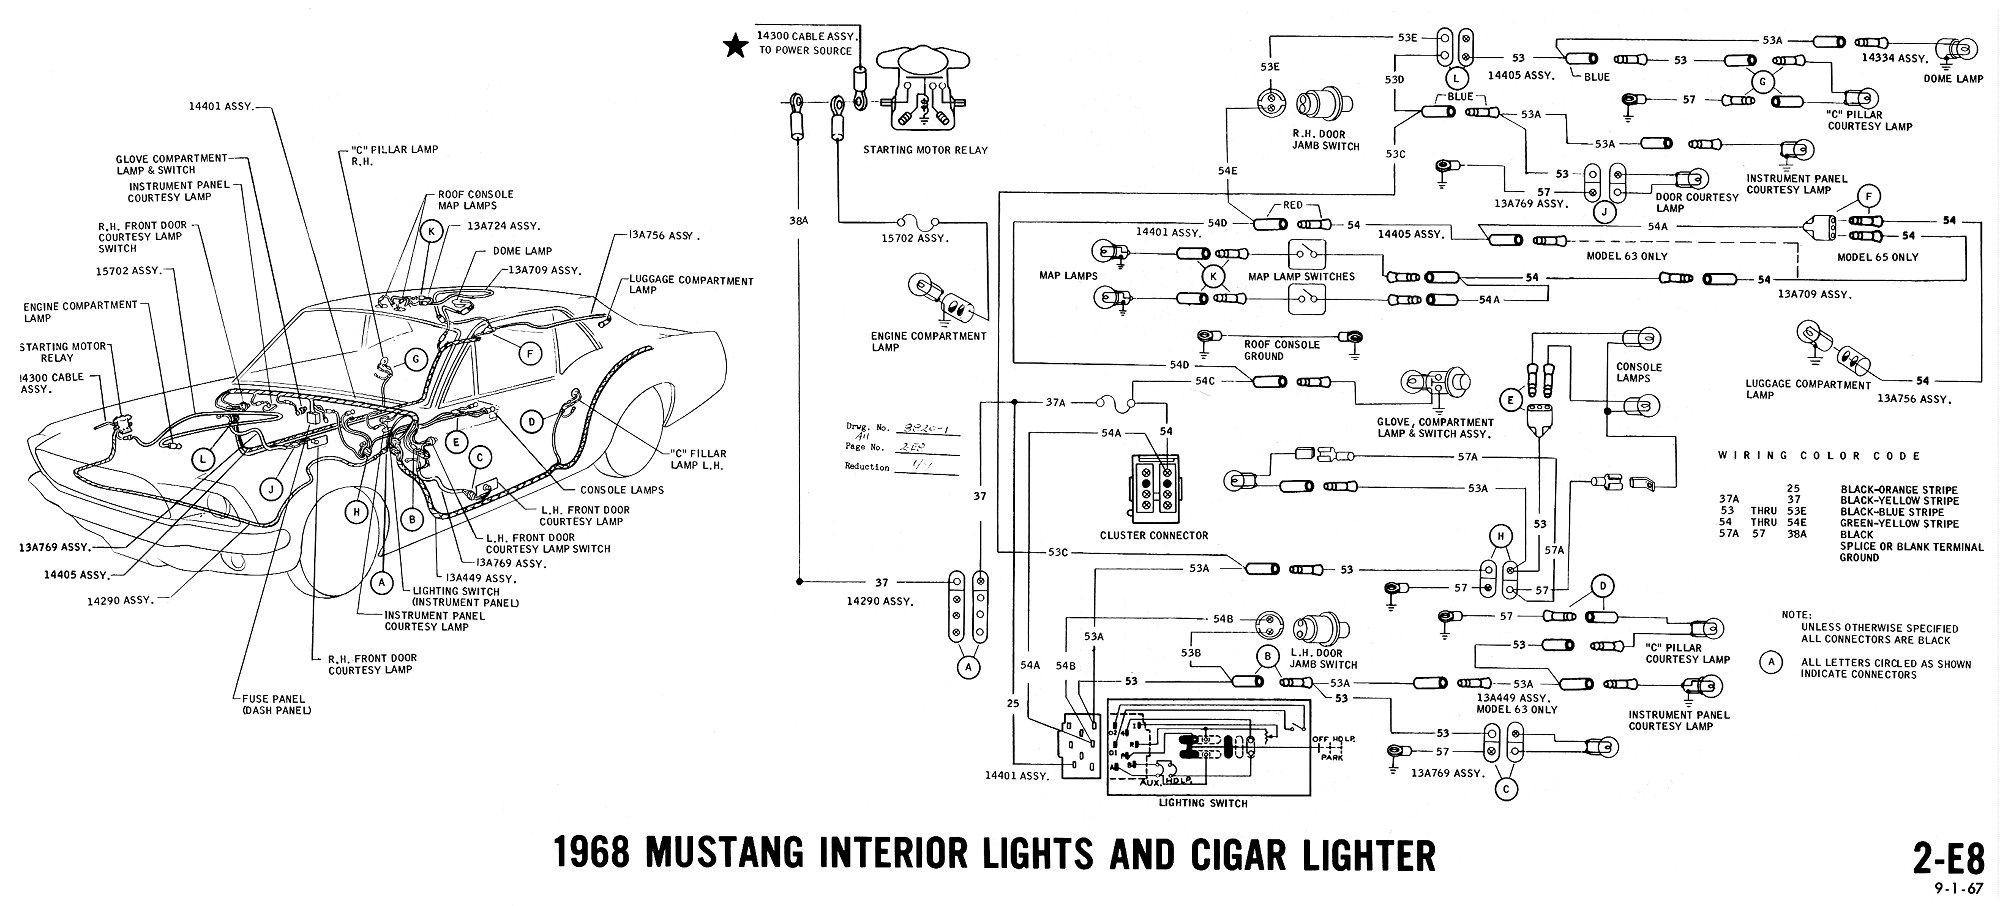 1967 Ford Mustang Cigarette Lighter Wiring Guide And 1987 Cougar Diagram Detailed Rh 15 7 Ocotillo Paysage Com Plug Jeep